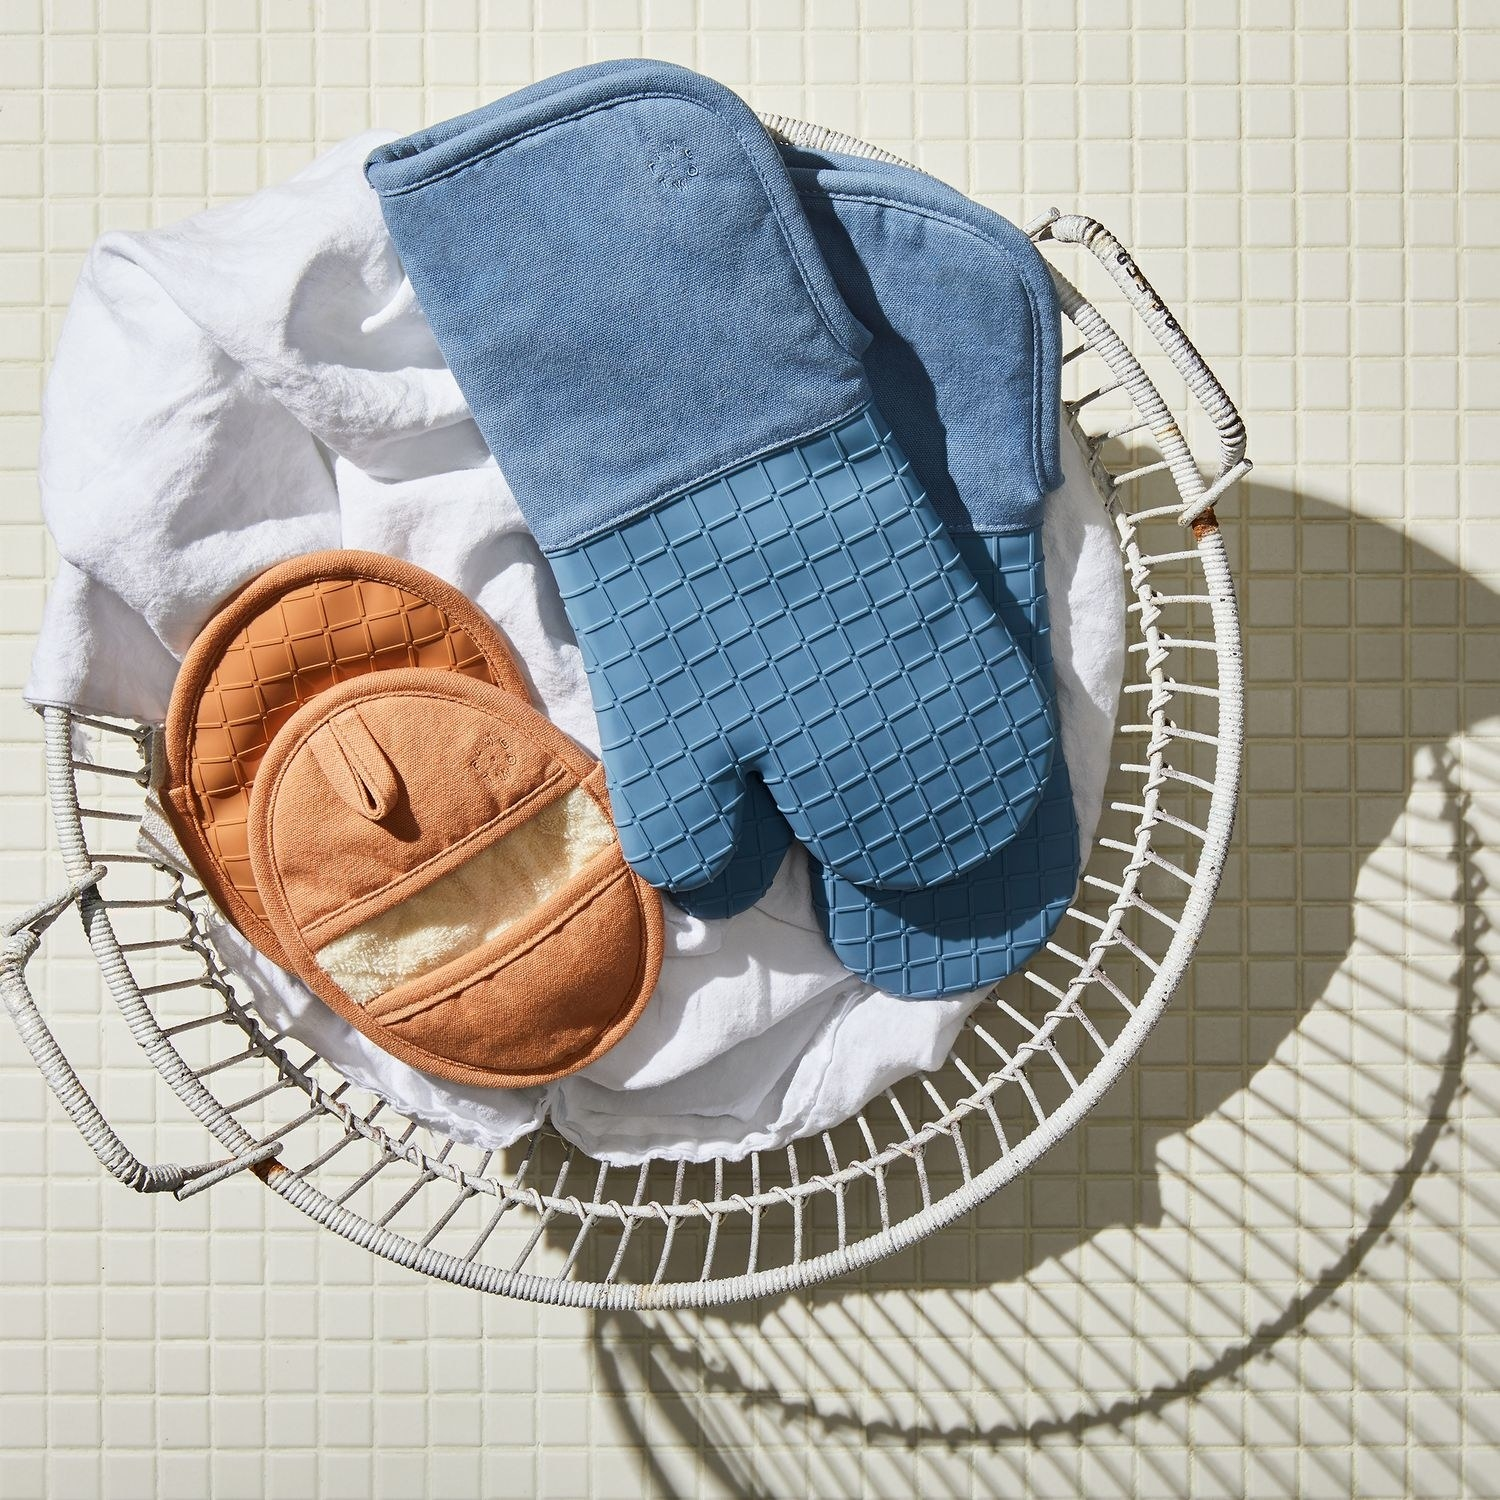 a set of silicone oven mitts and pot holders in a basket